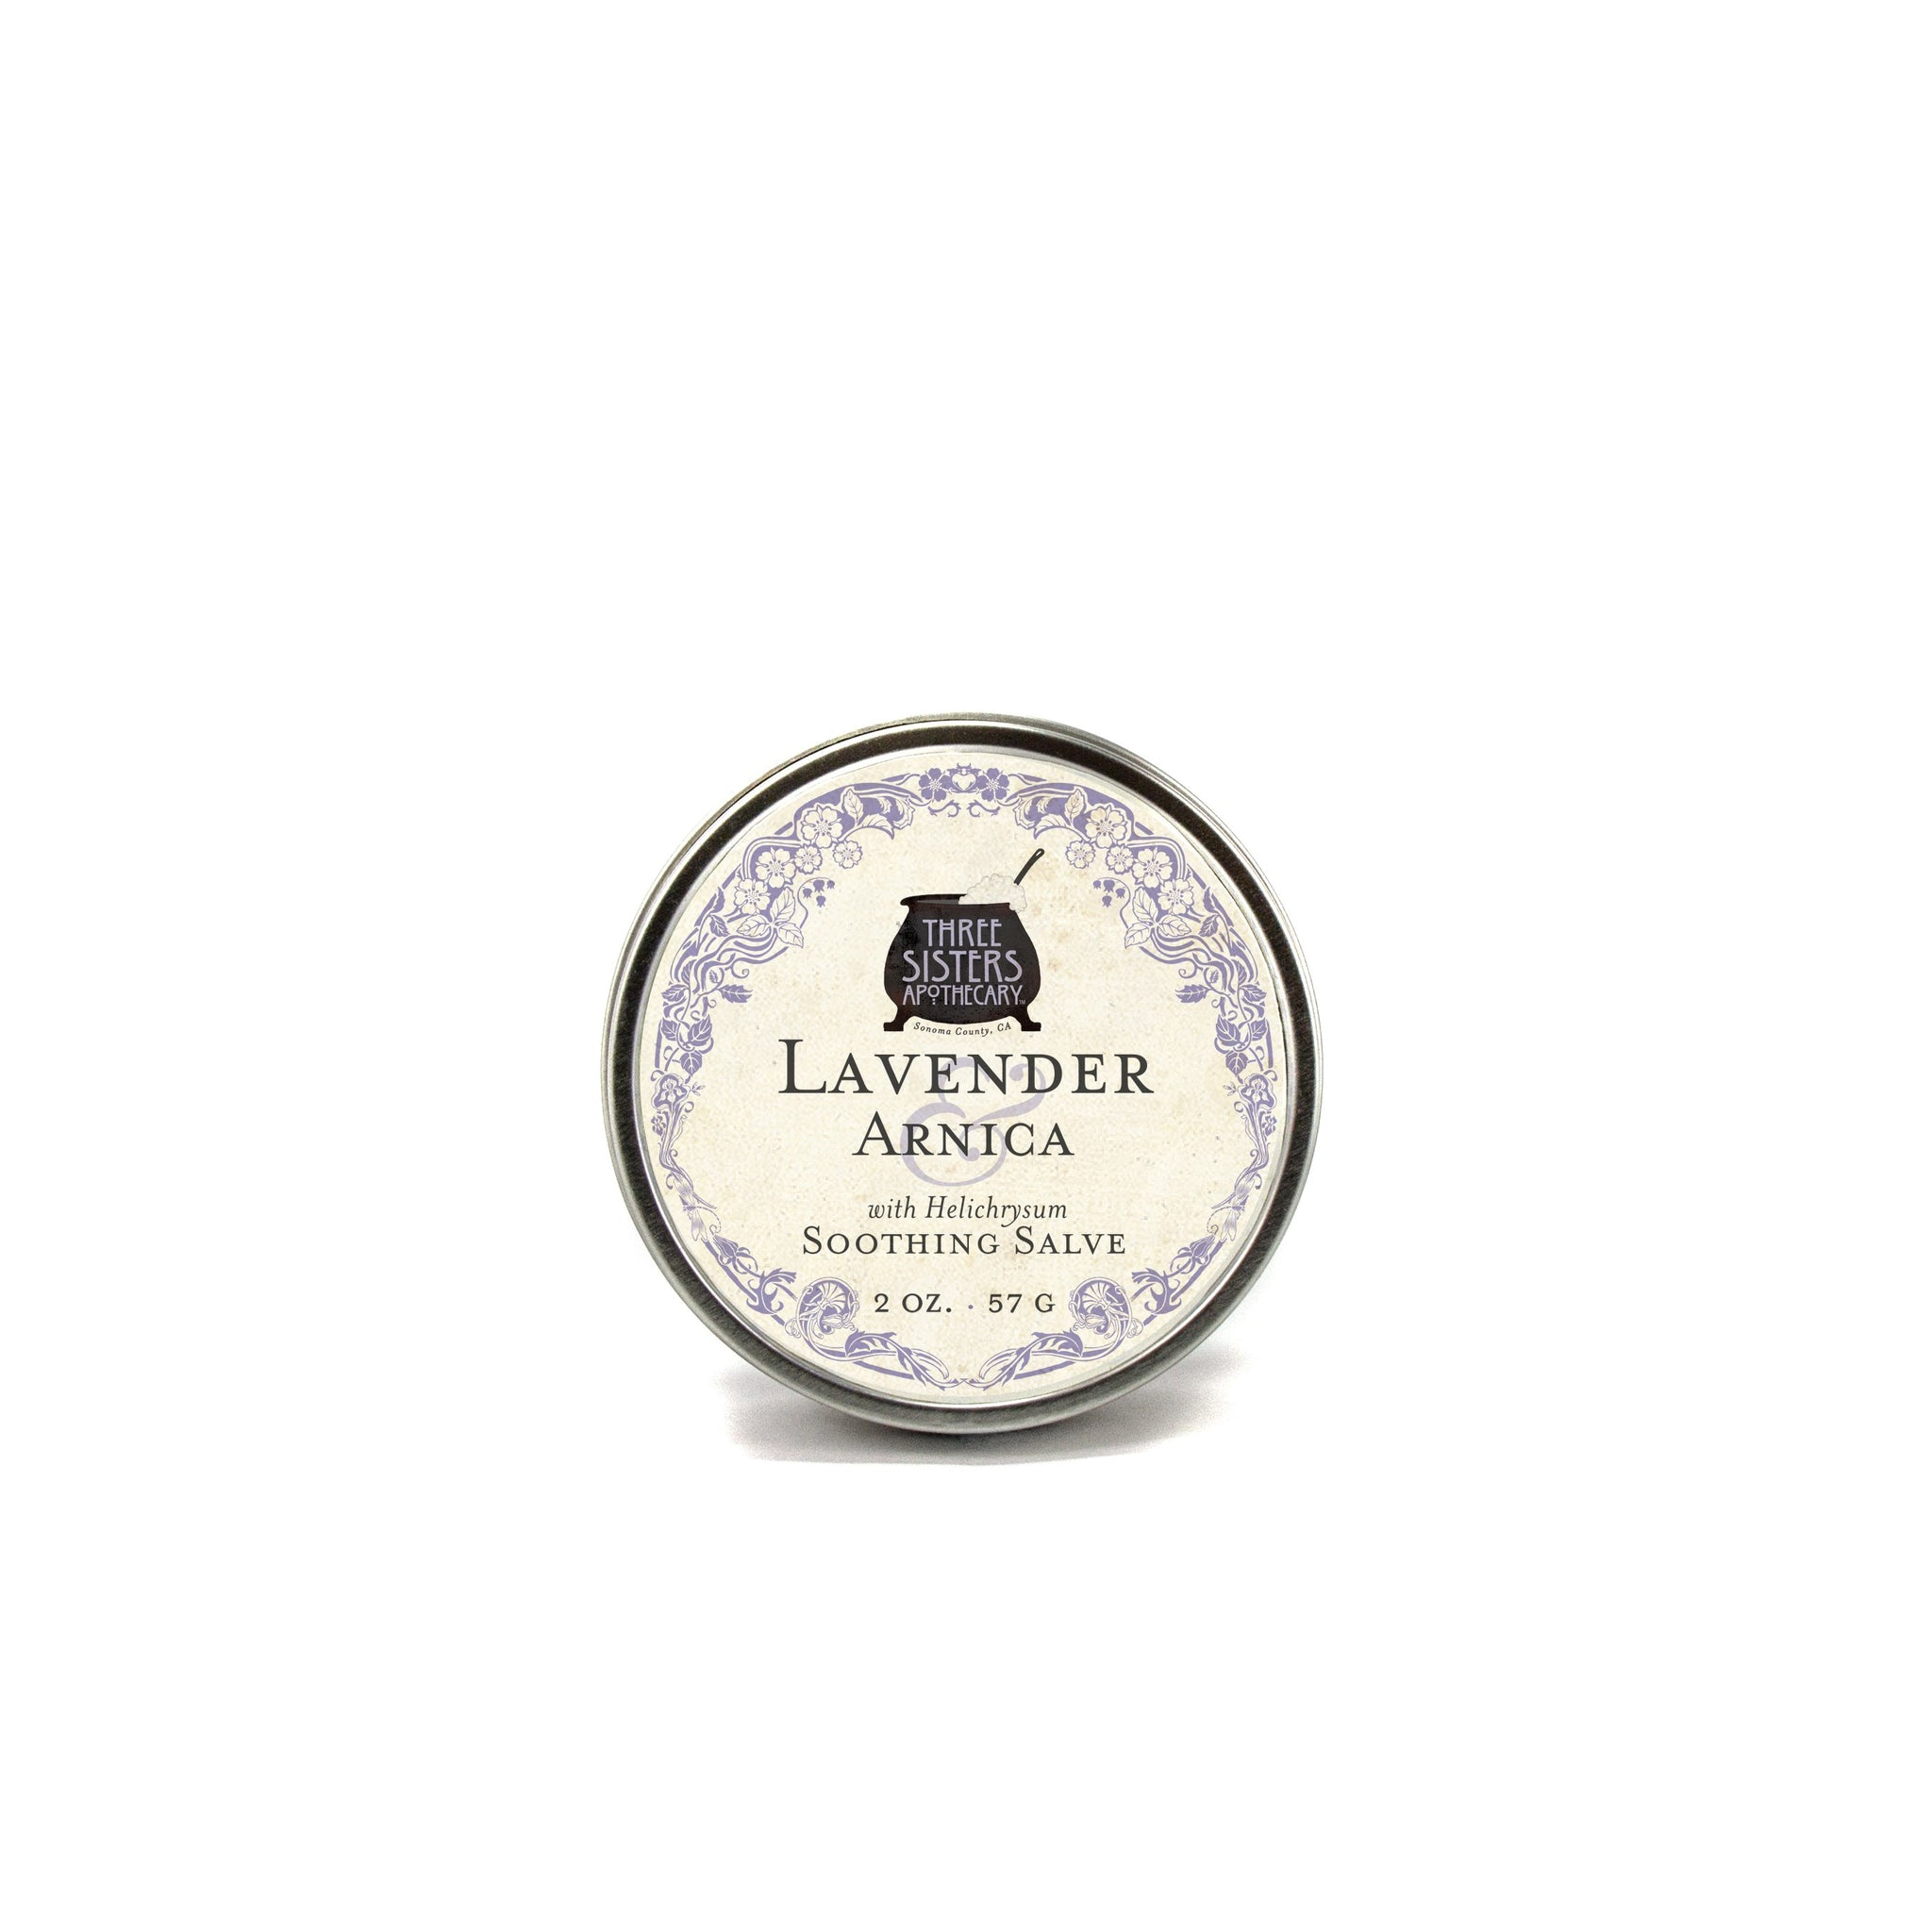 Lavender & Arnica Soothing Salve